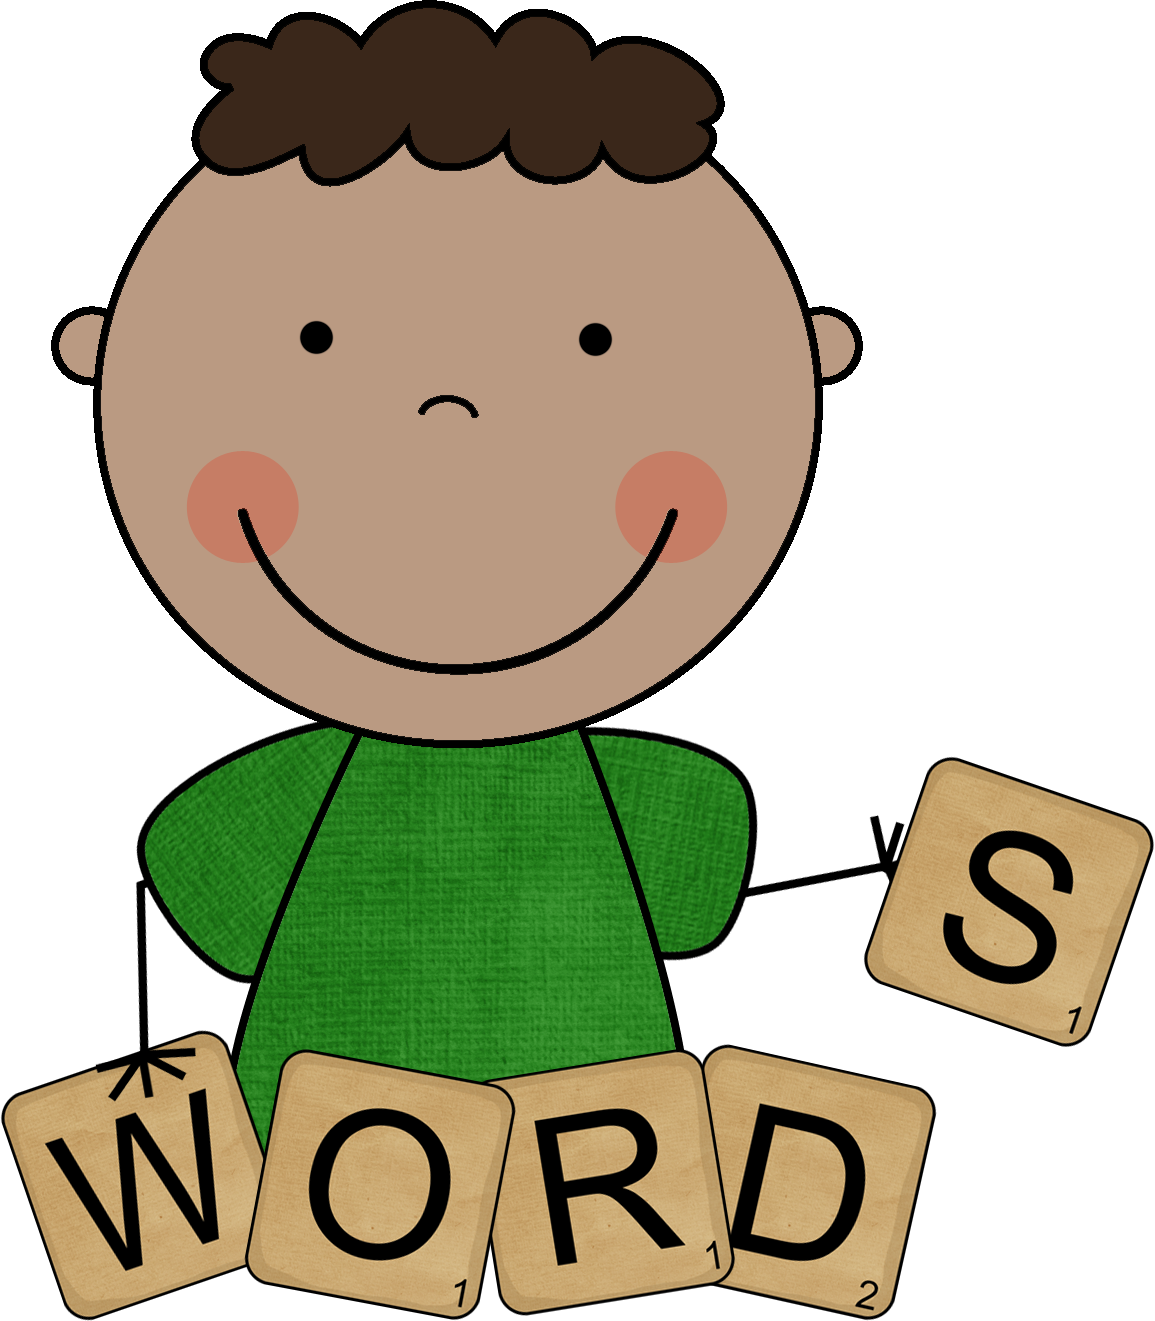 Daily 5 Word Work Clipart | Clipart - 774.6KB